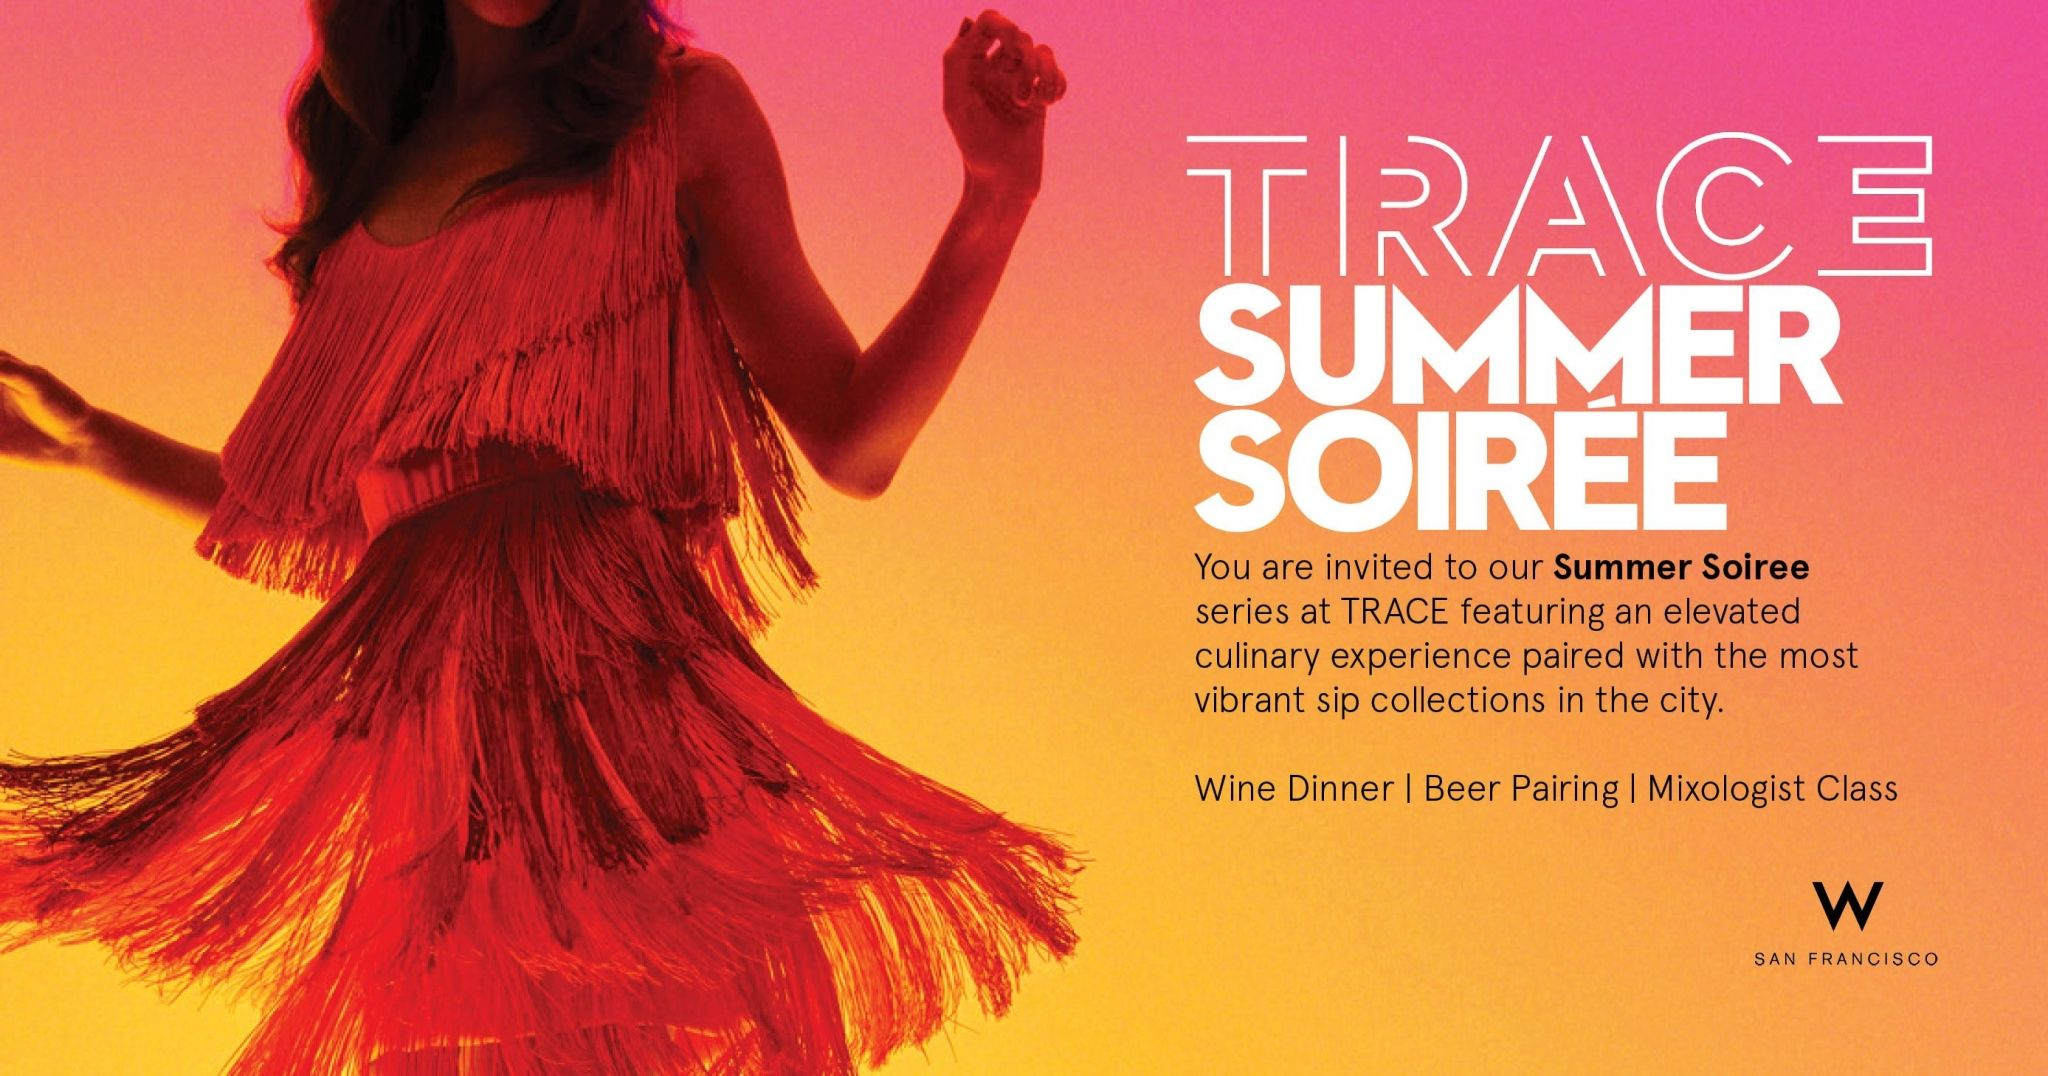 Join us for our TRACE Summer Soirée event series at W San Francisco hotel.